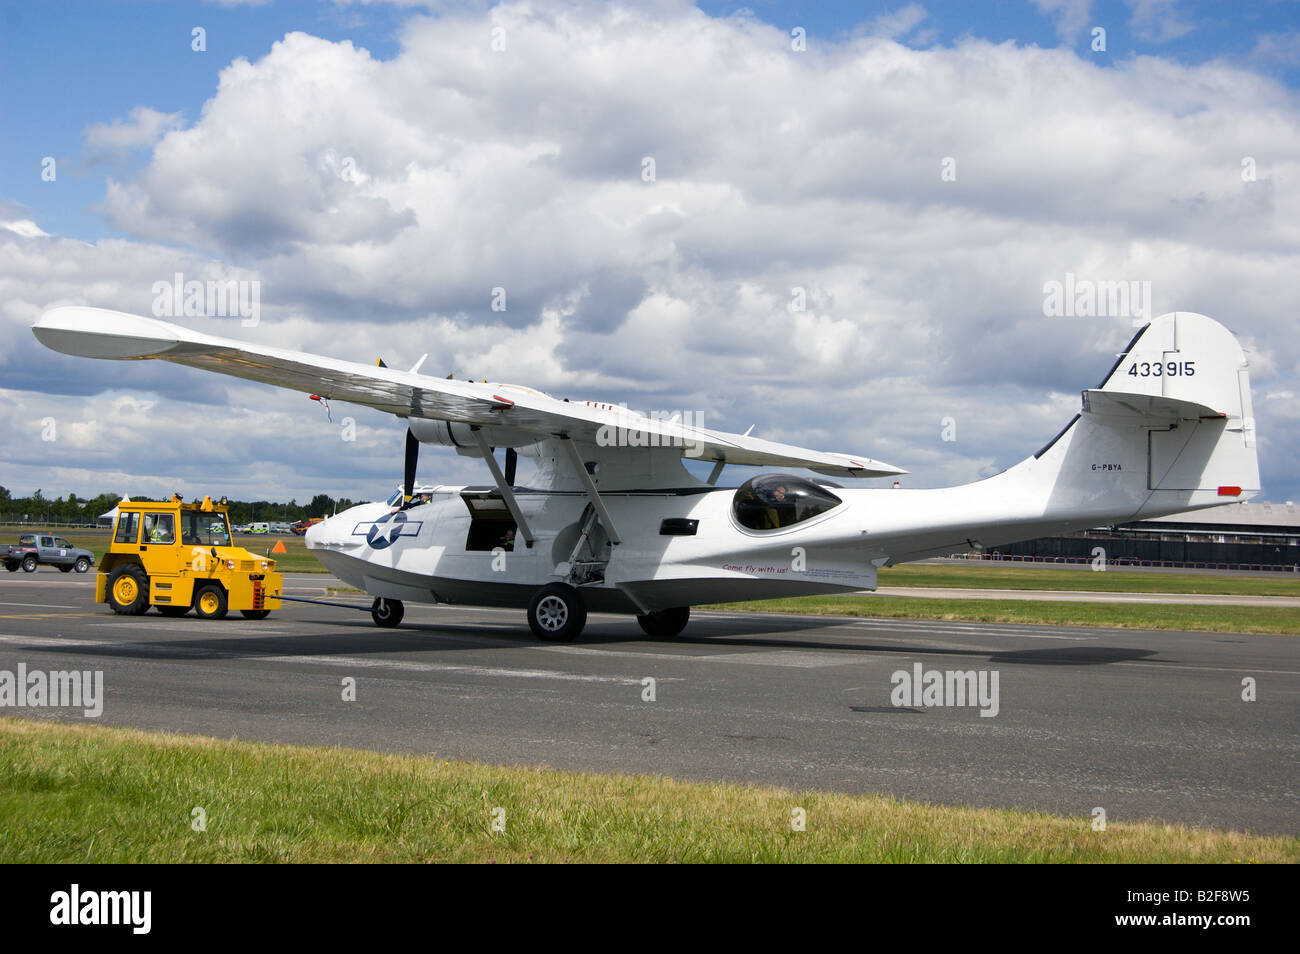 A Consolidated Catalina taxiing onto the runway - Stock Image